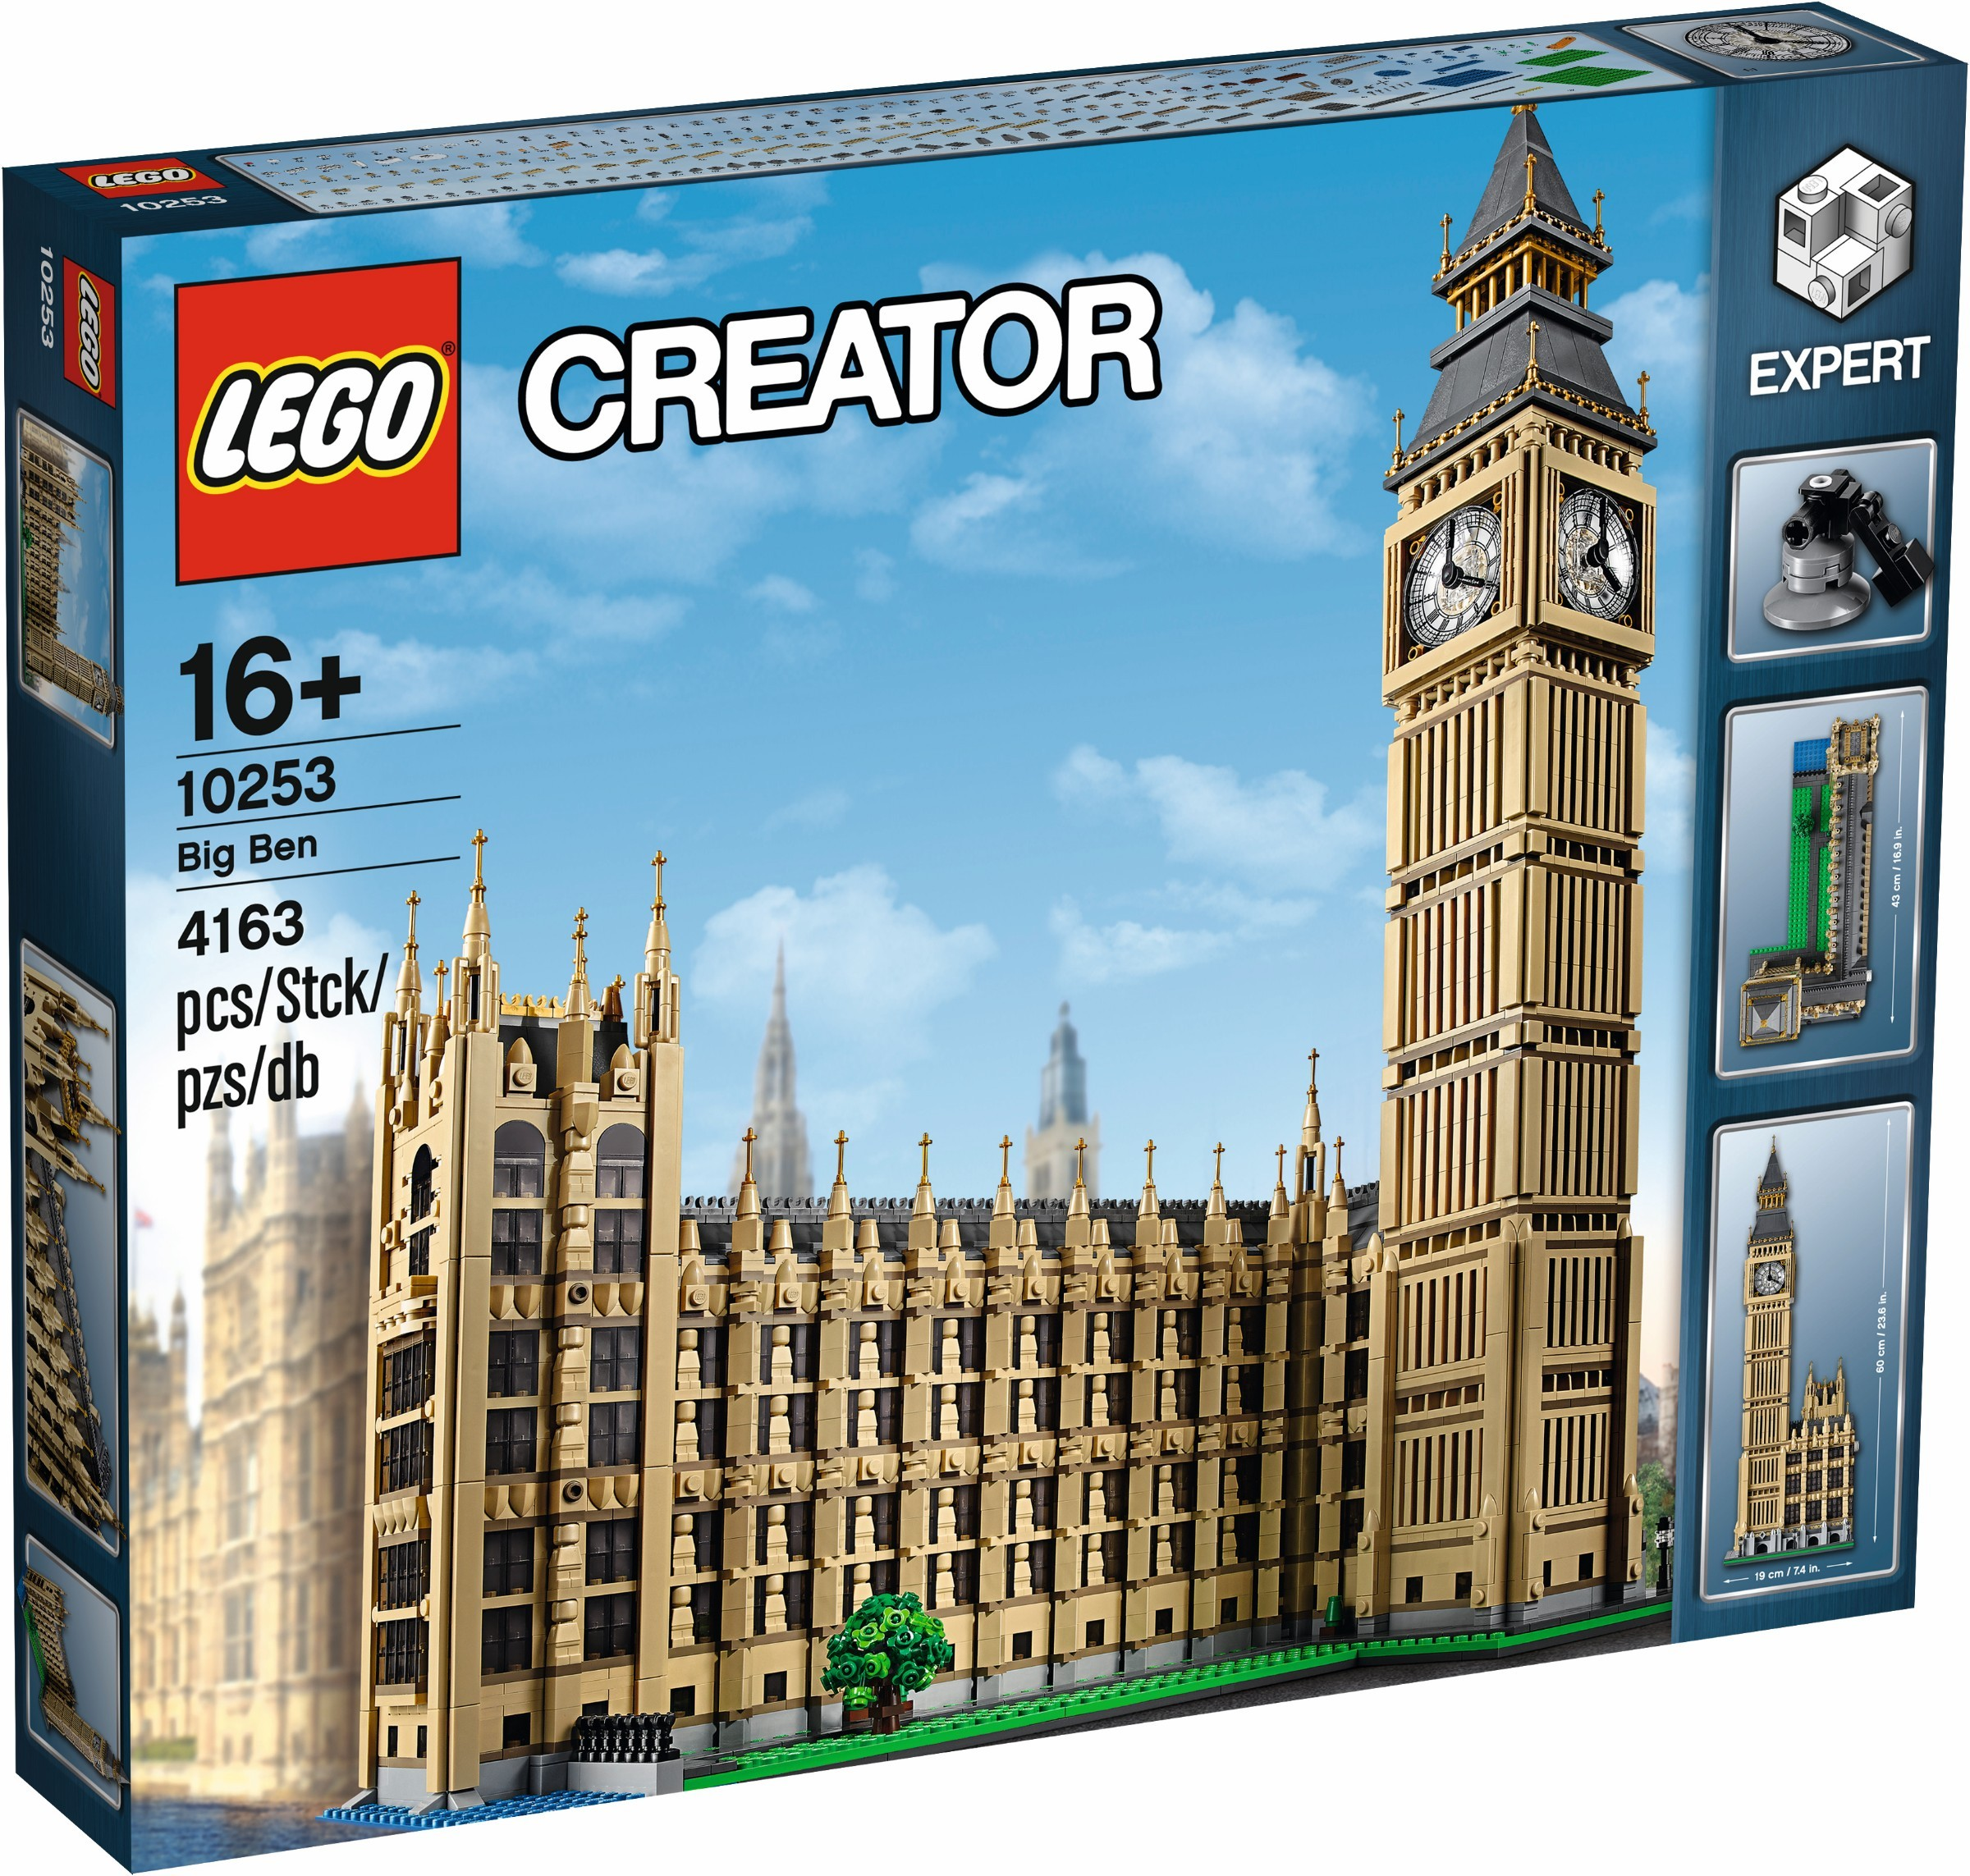 Lego Creator Expert 10253 Big Ben Review Brickset Lego Set Guide